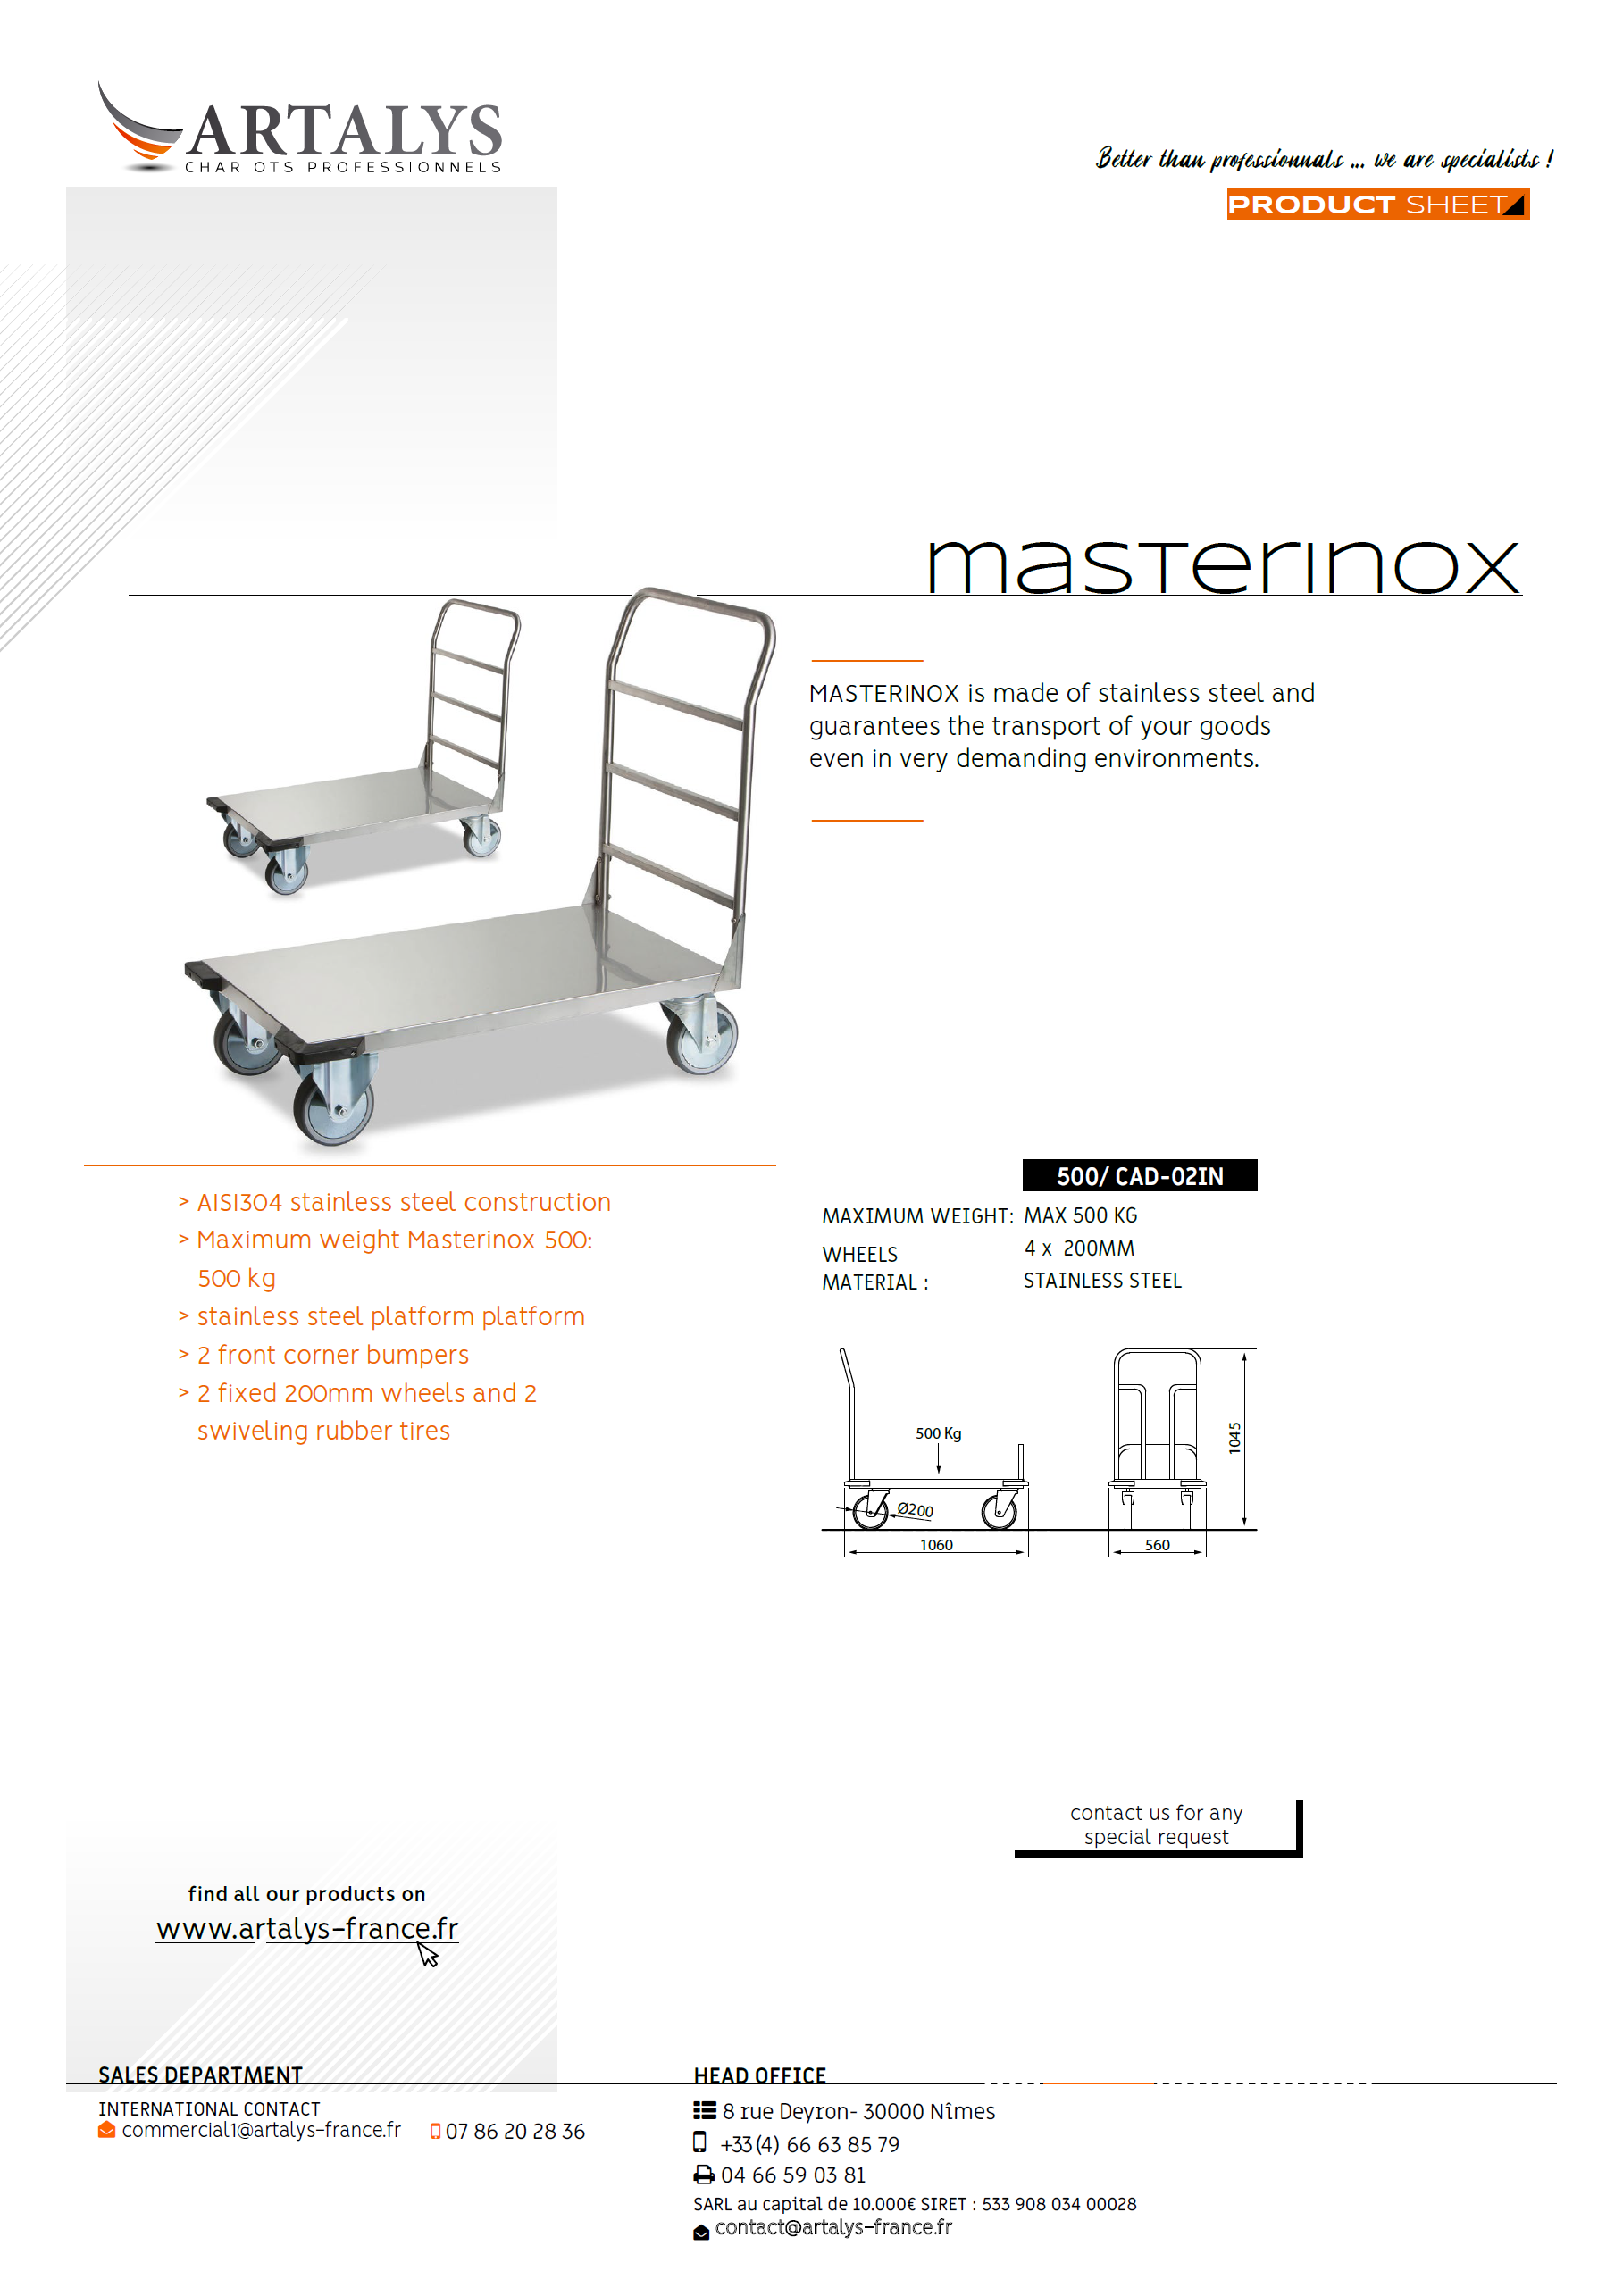 Product sheet of our masterinox stewardship trolley